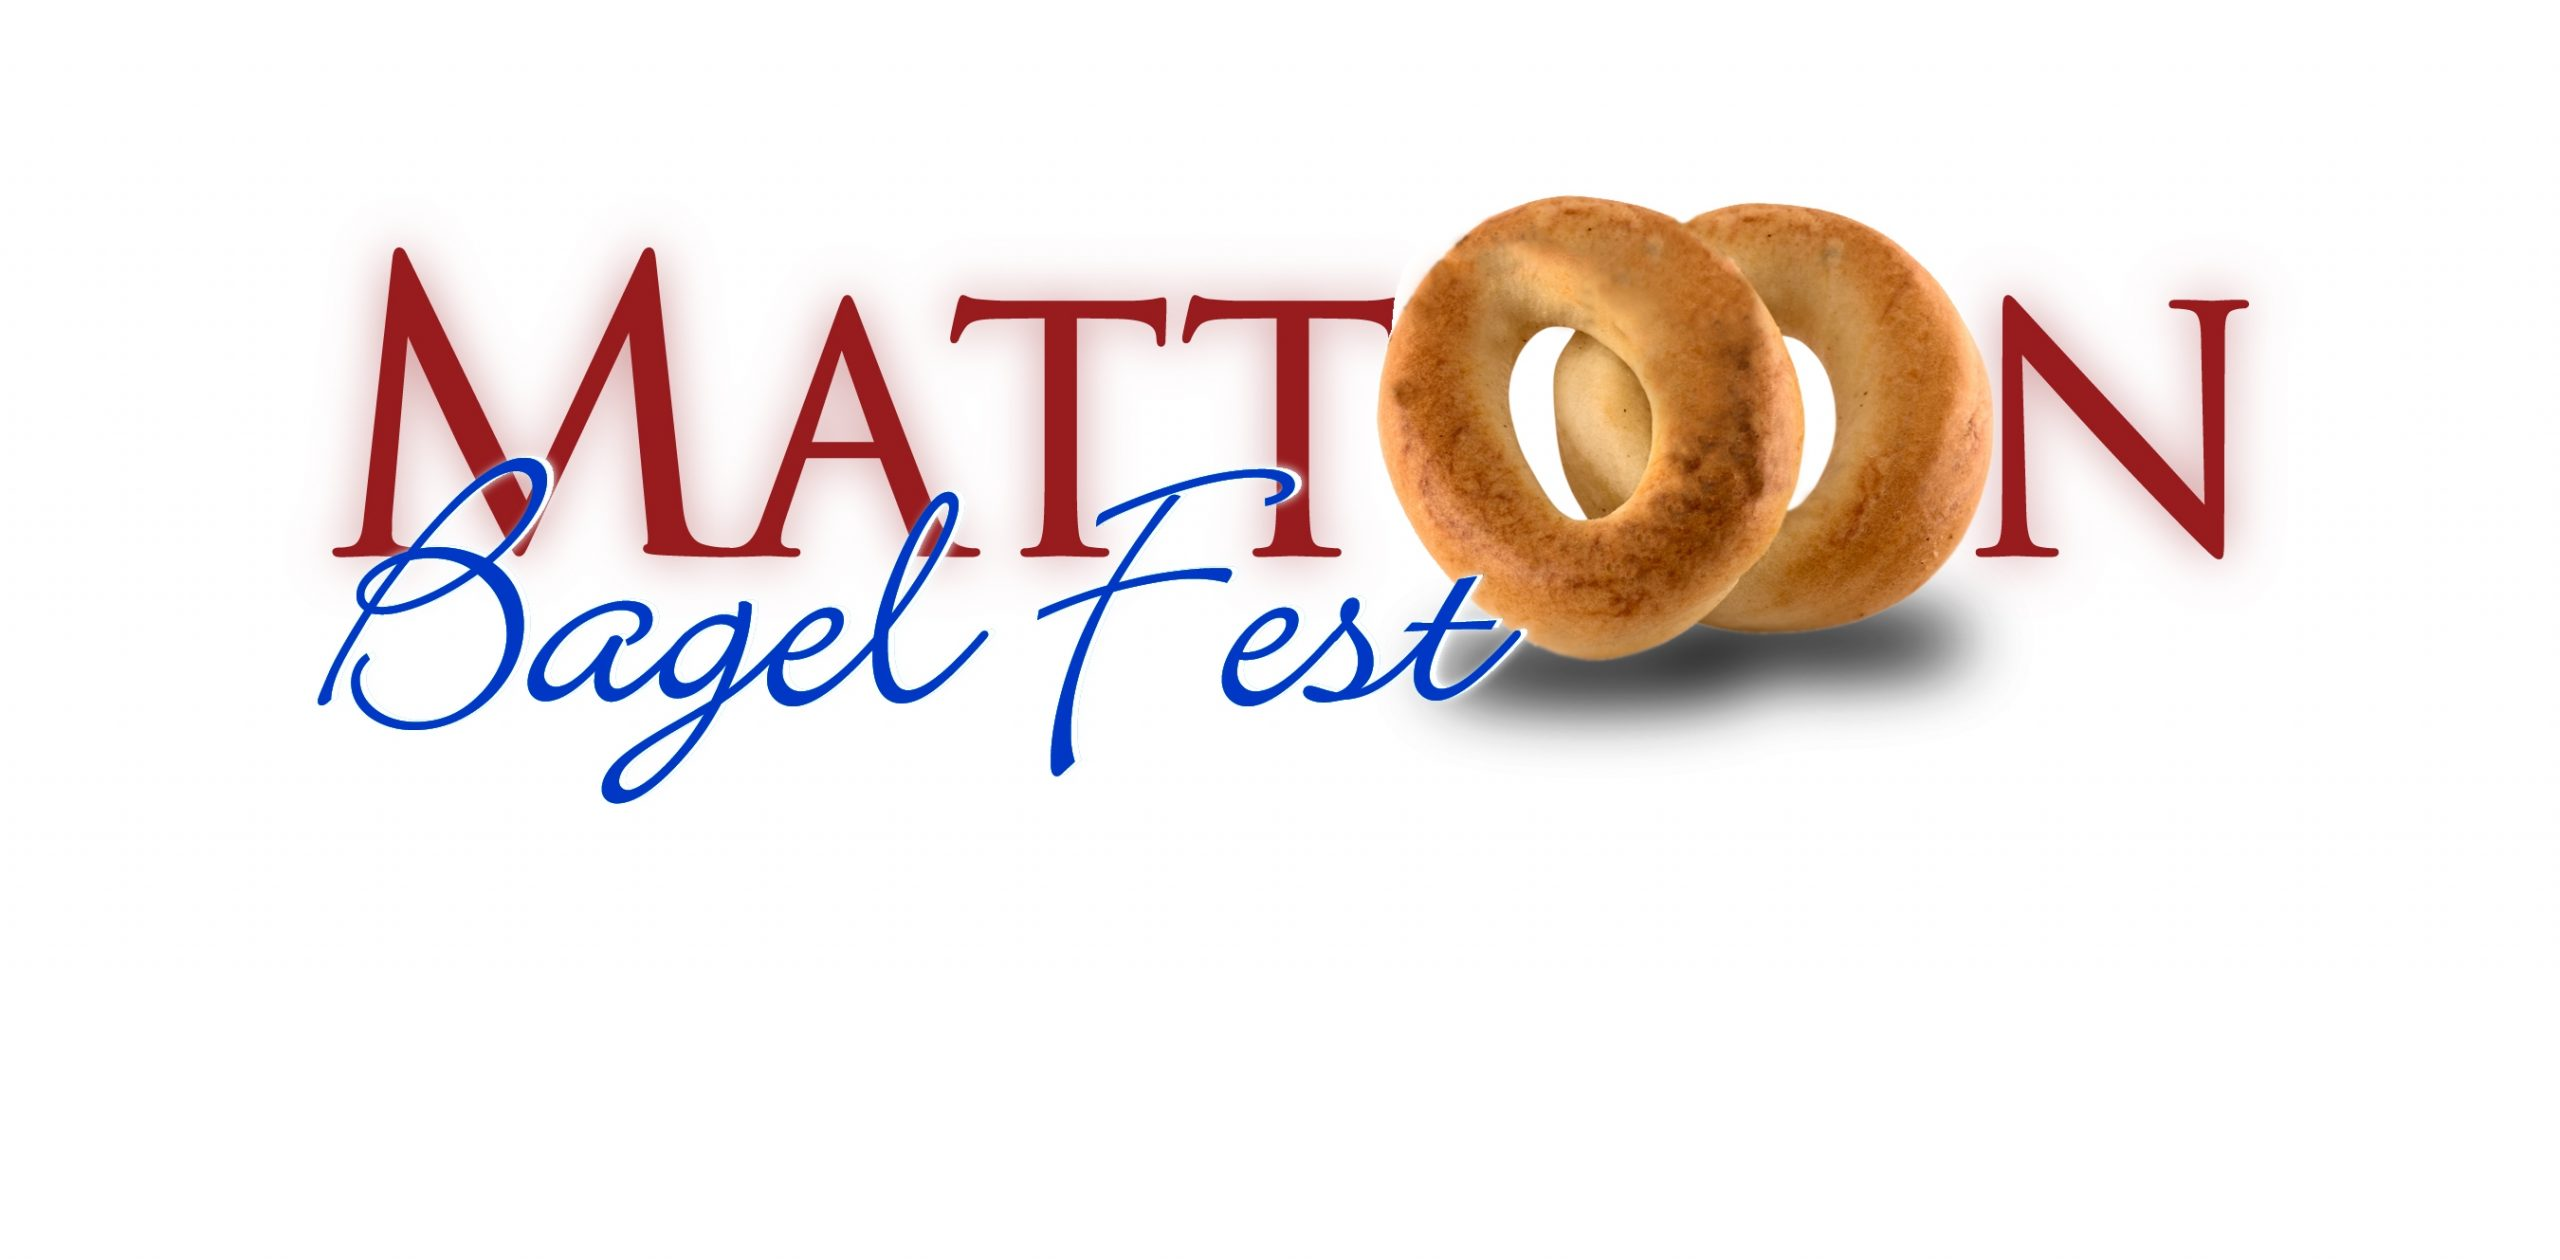 Mattoon Bagelfest: Today, Friday, July 21